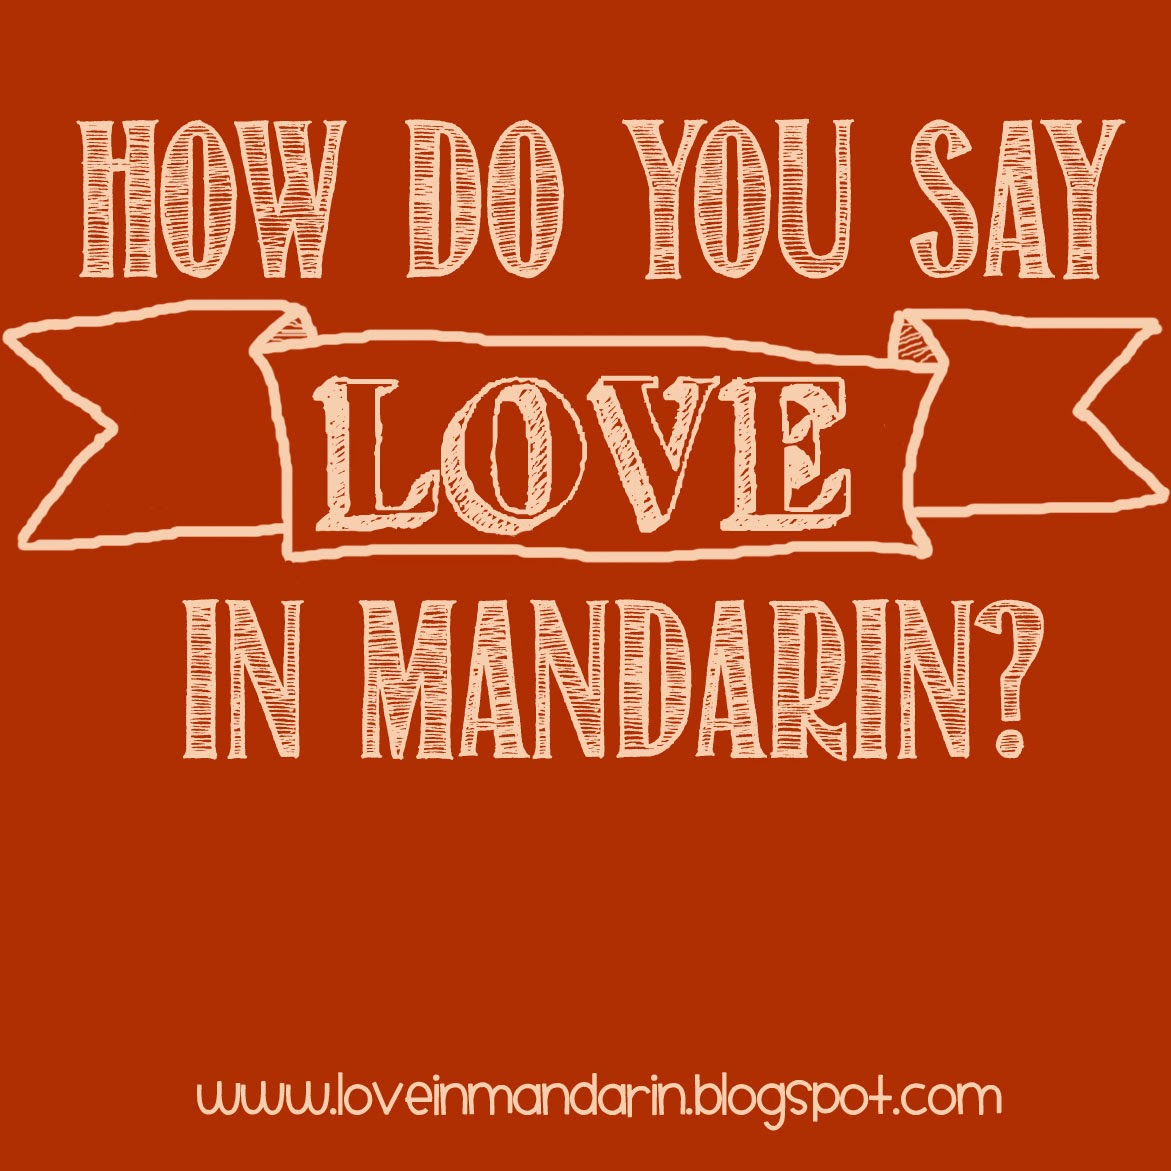 How Do You Say Love in Mandarin